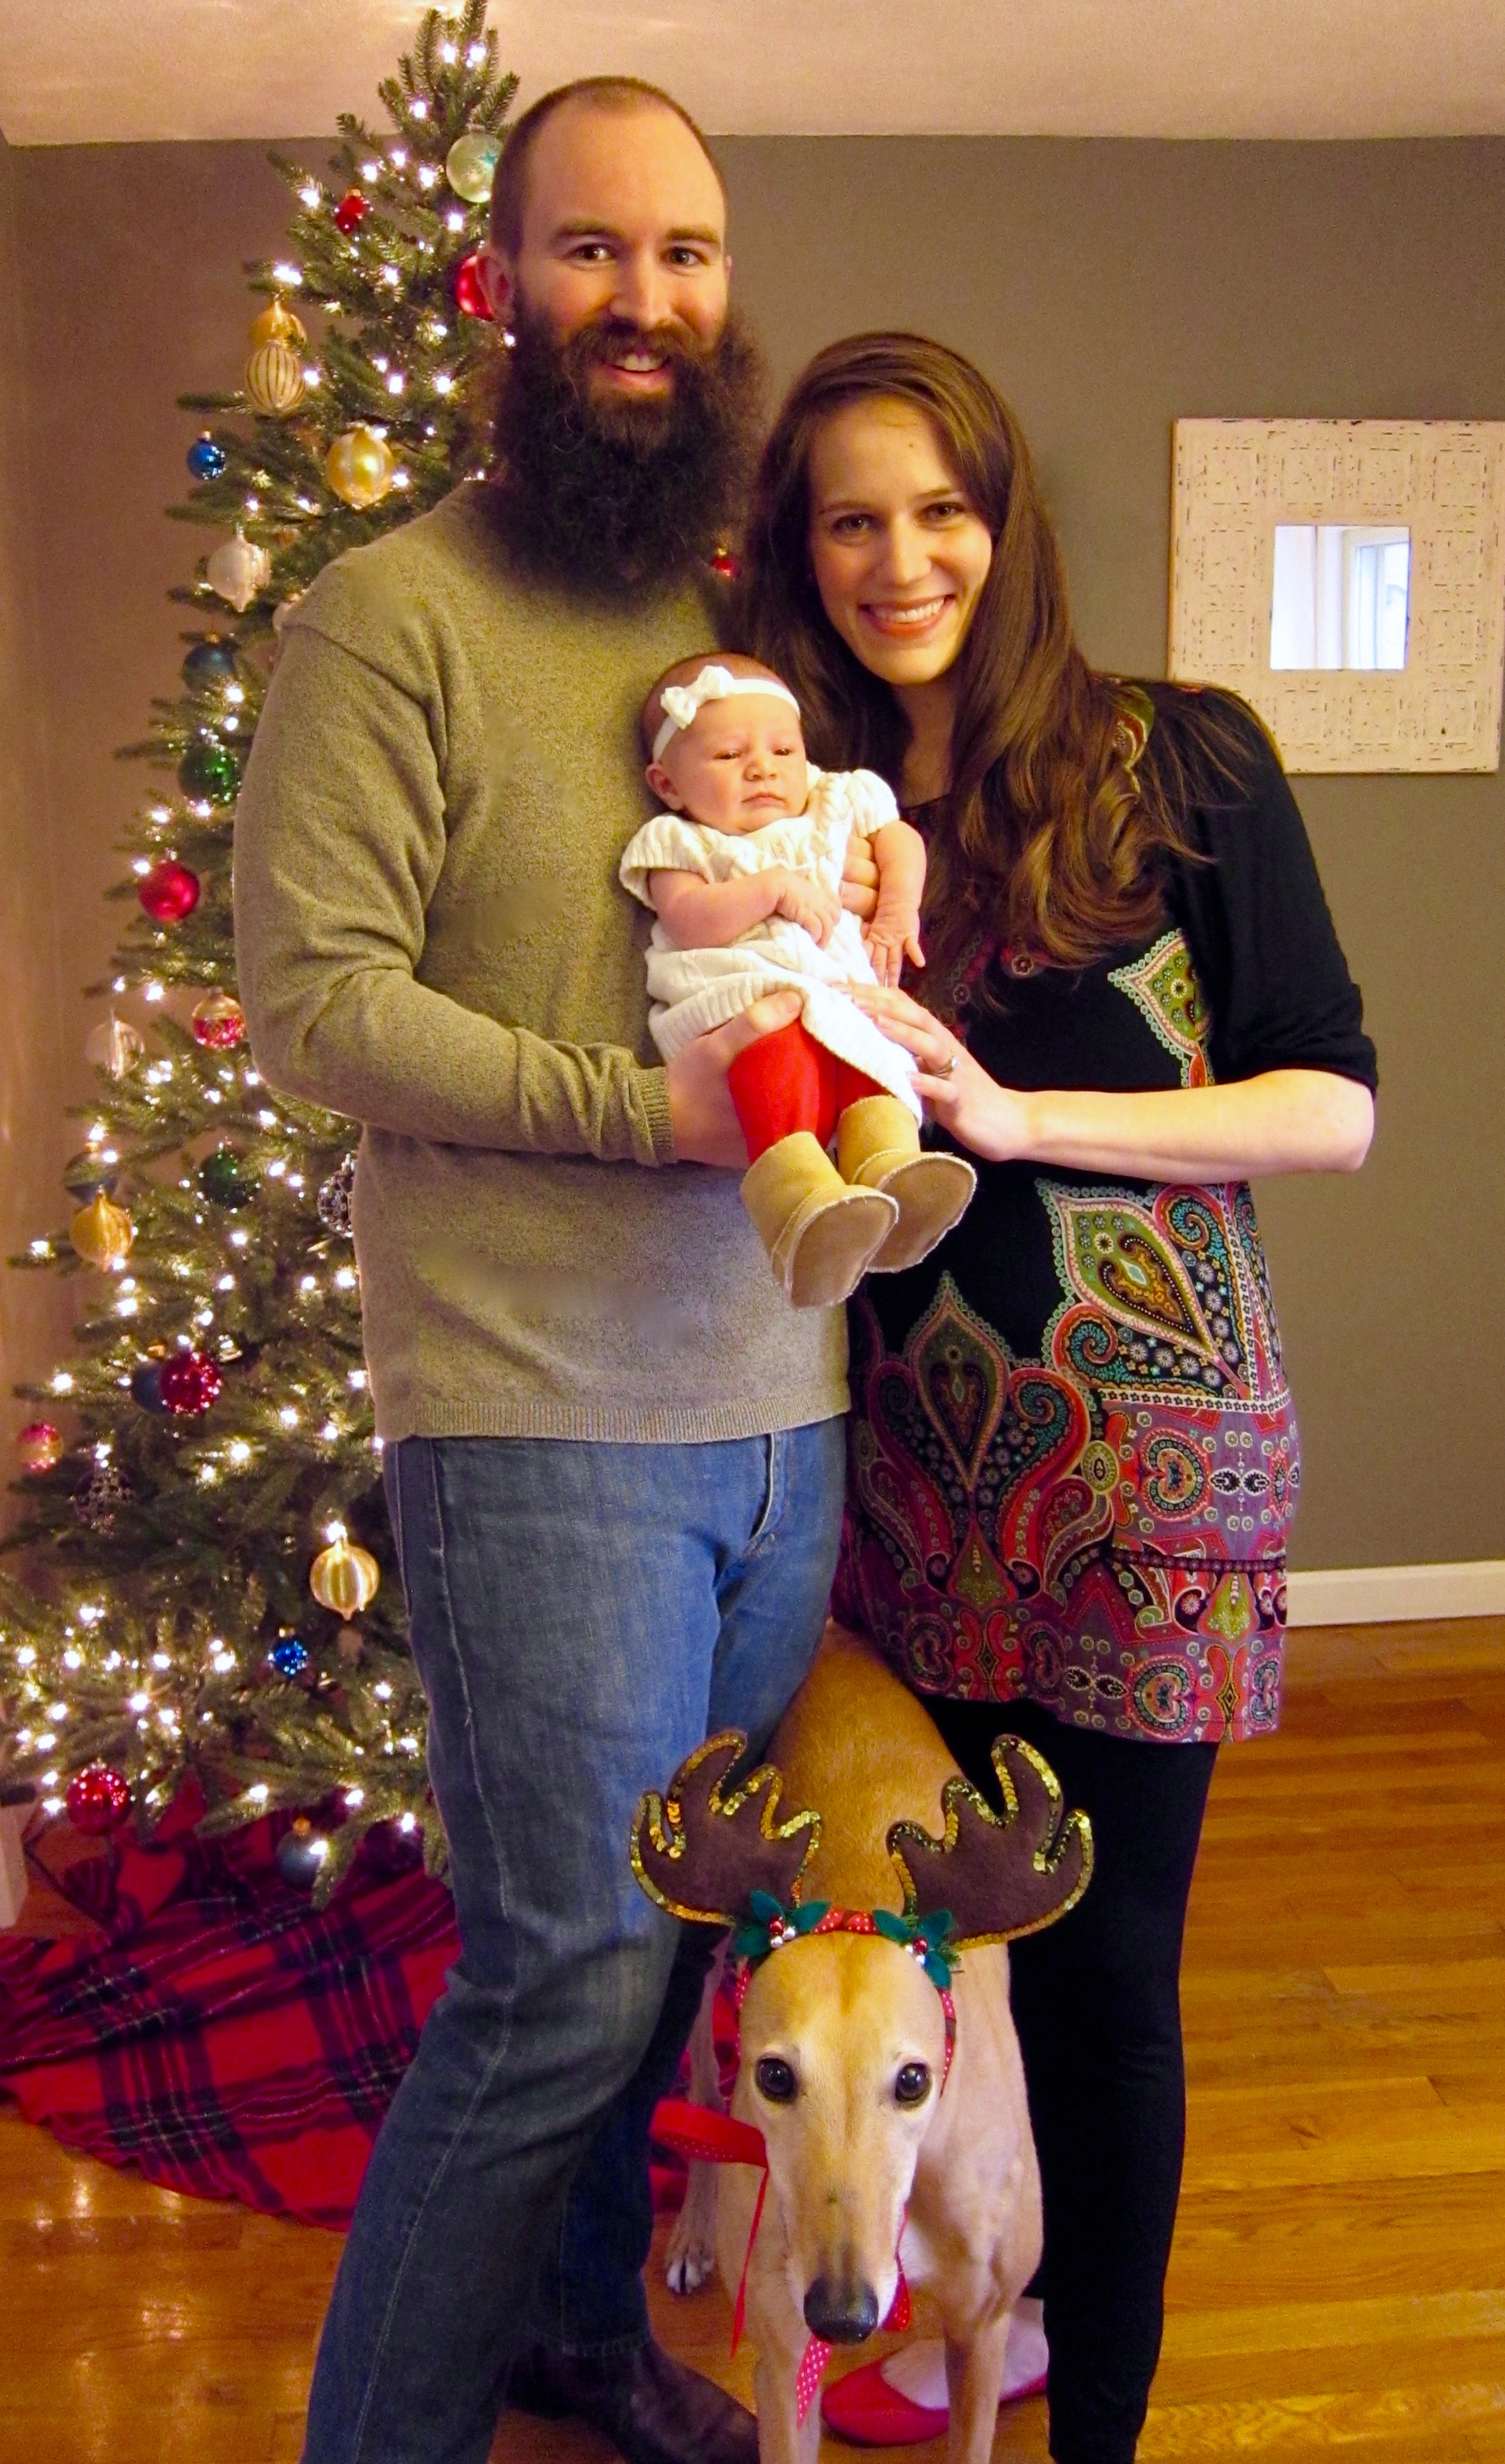 Our Christmas card/birth announcement photo. This was the only shot where Babywoods wasn't crying and Frugal Hound was facing forward.